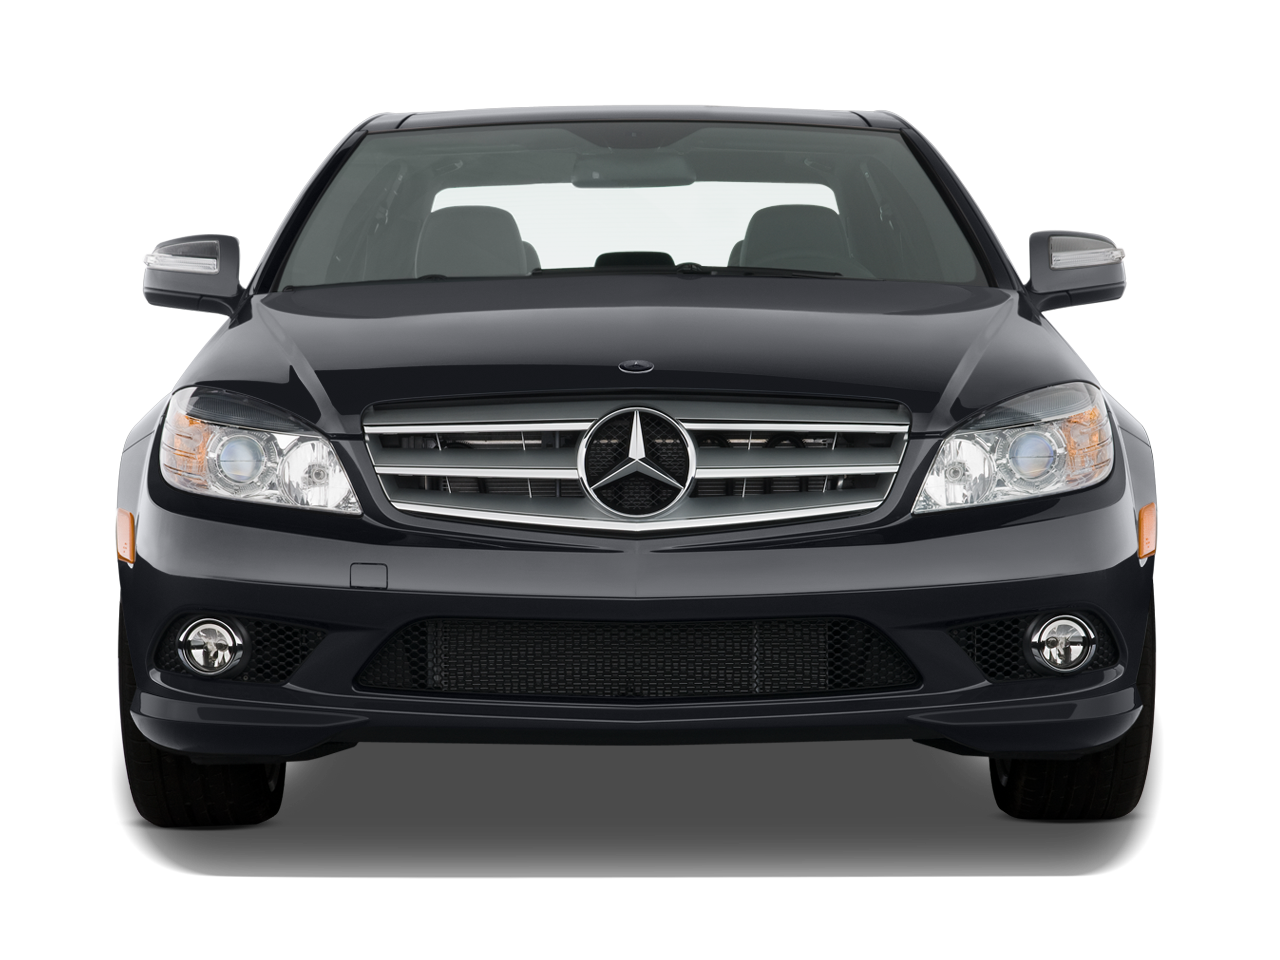 2009 mercedes benz c300 4matic mercedes benz luxury. Black Bedroom Furniture Sets. Home Design Ideas